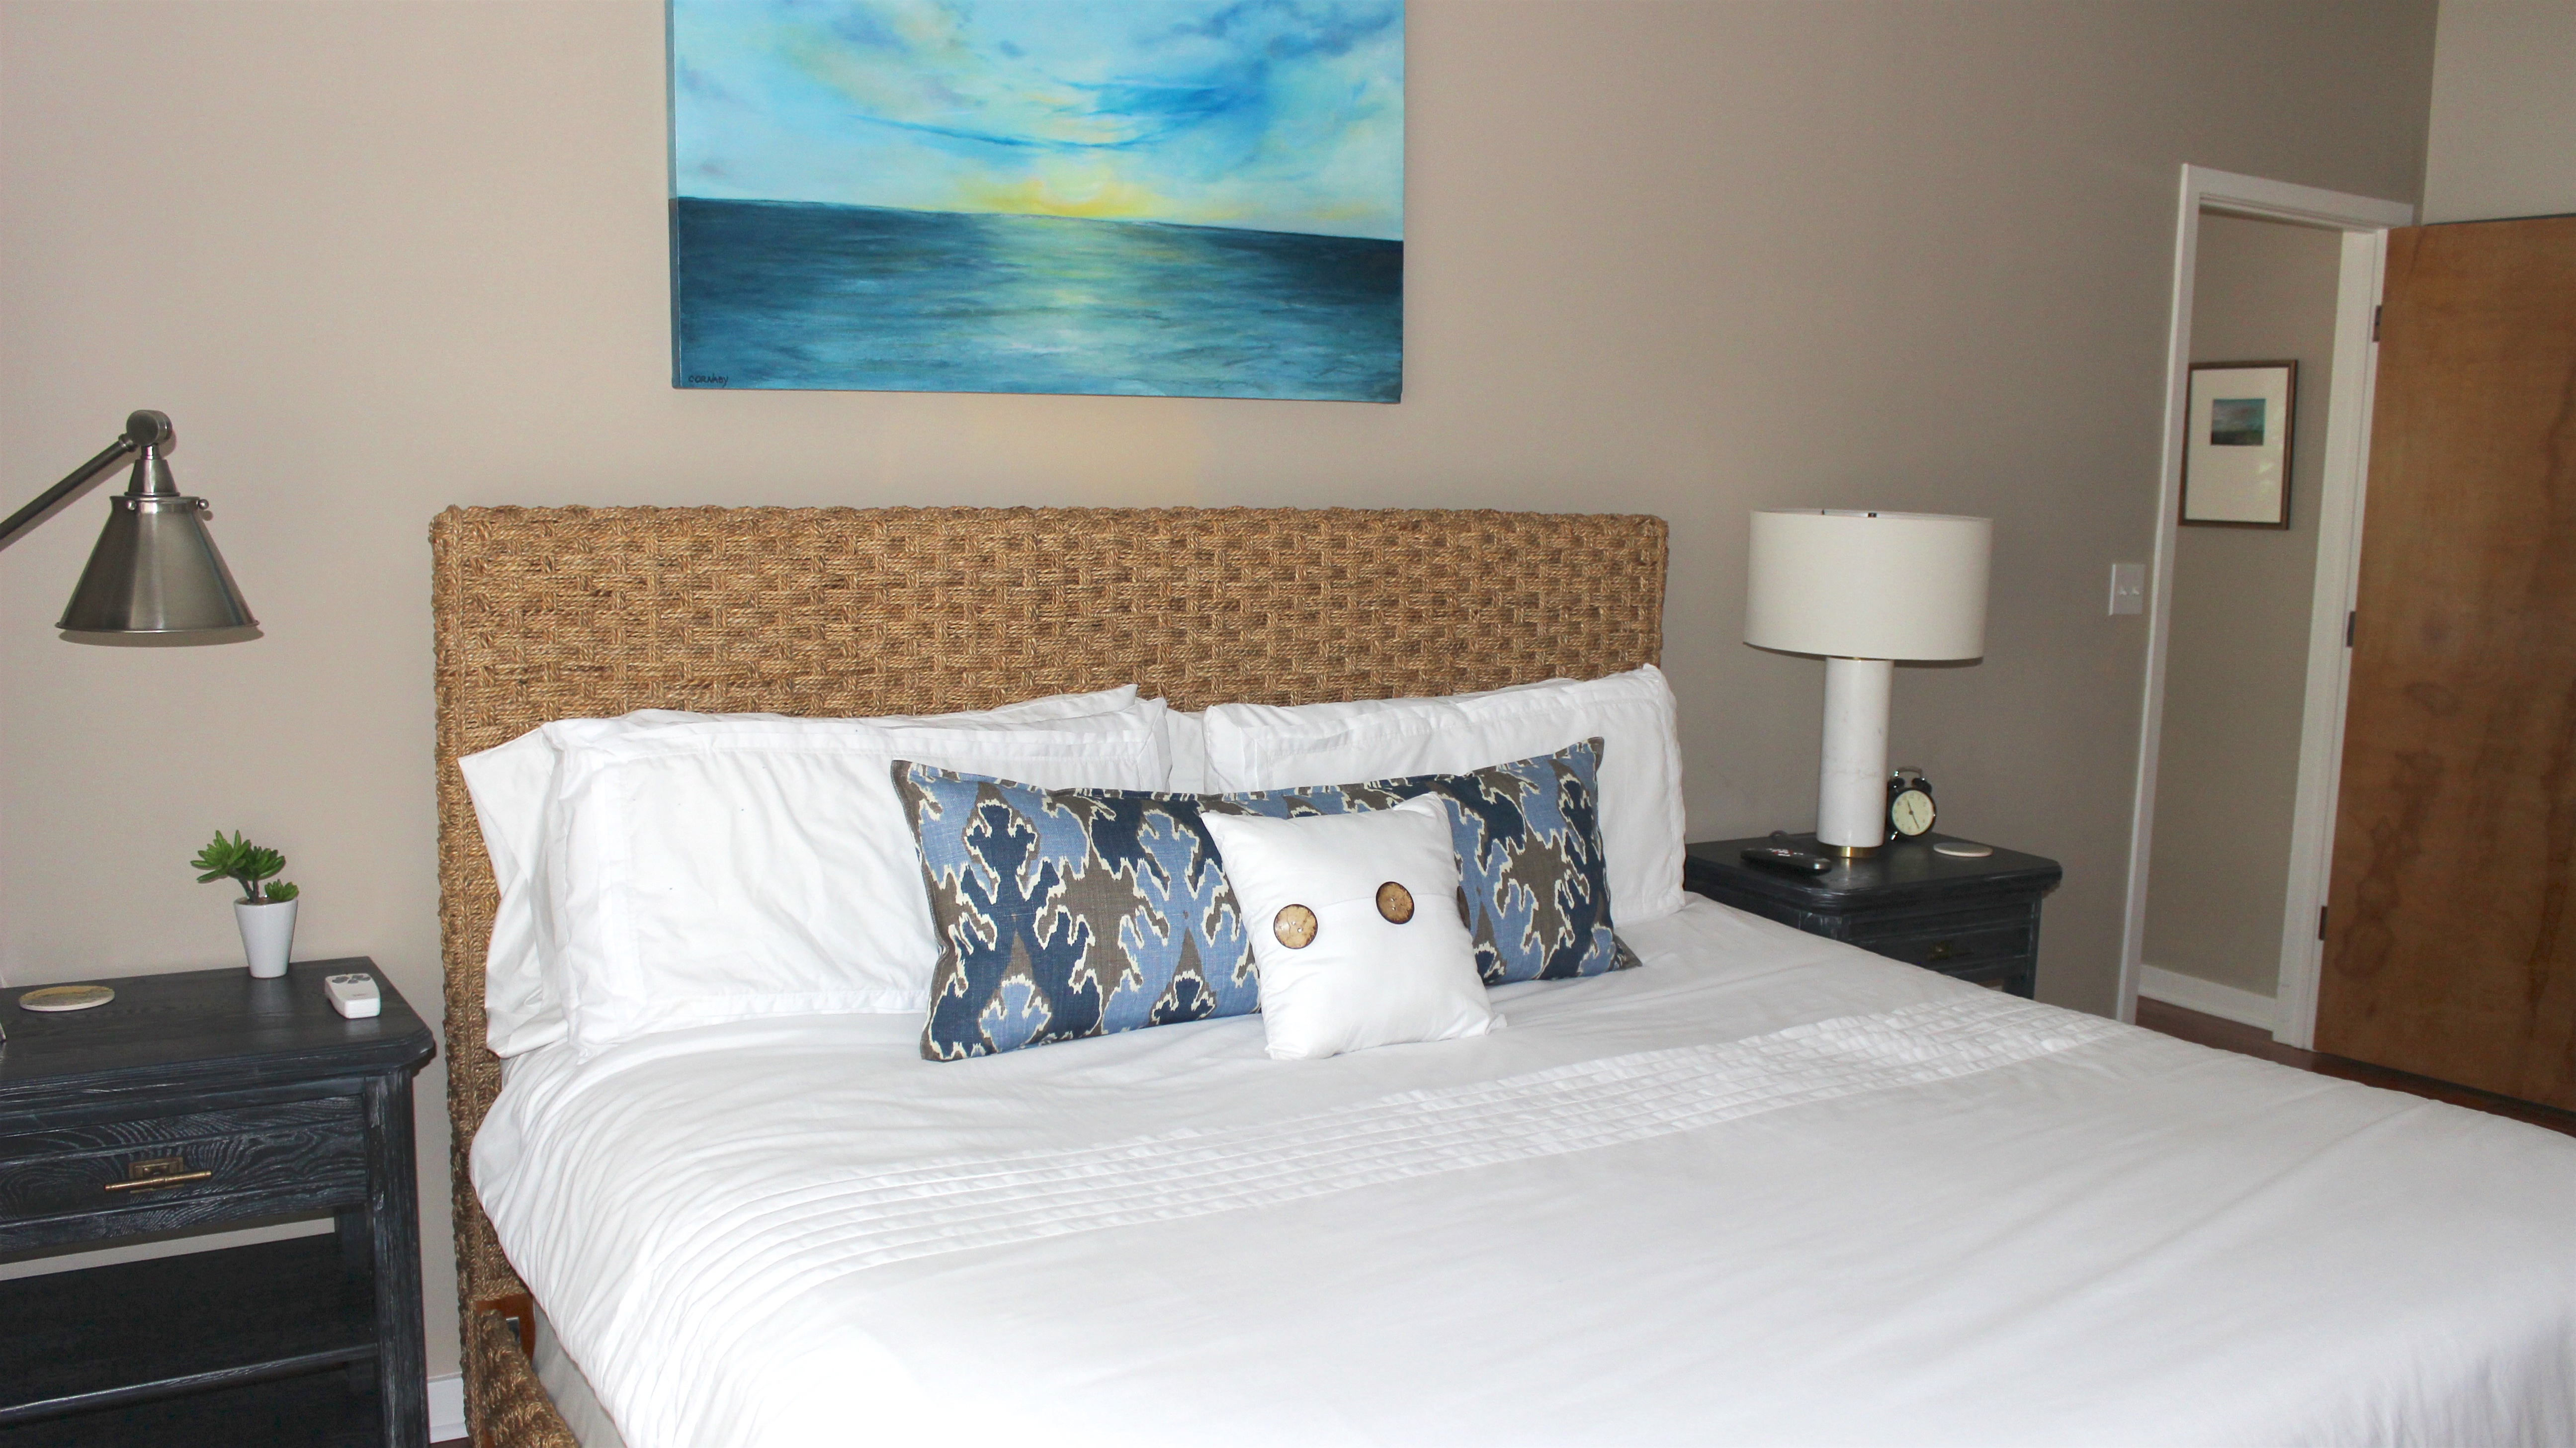 It has a king size bed with rattan headboard. Original art evokes beach dreams.